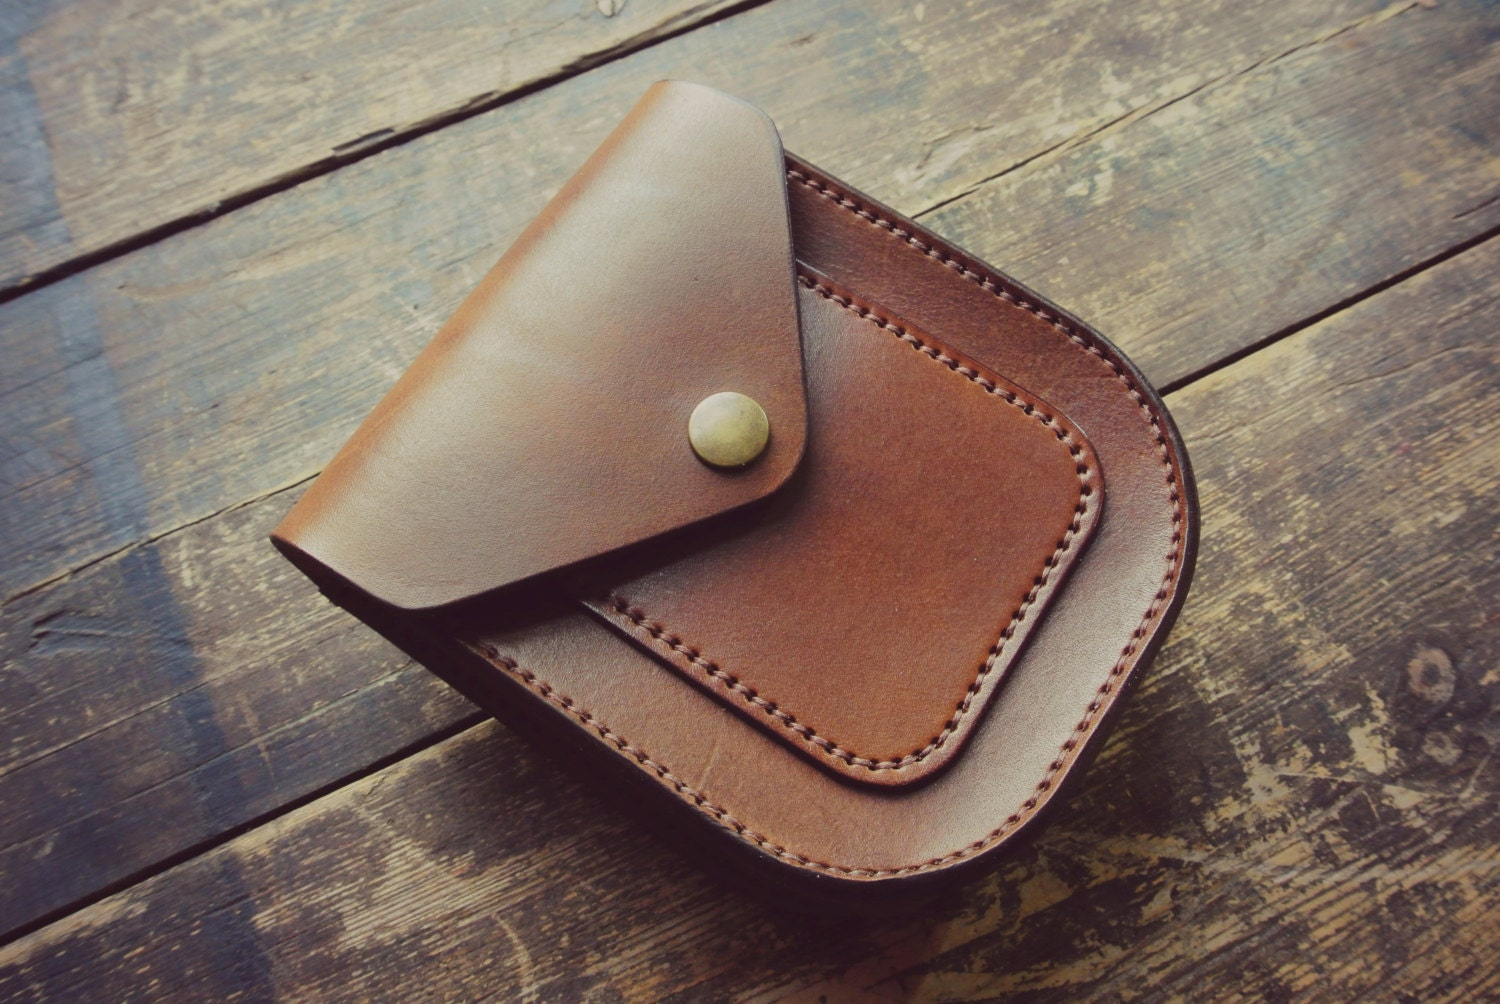 handmade veg tanned leather possibles pouch belt by